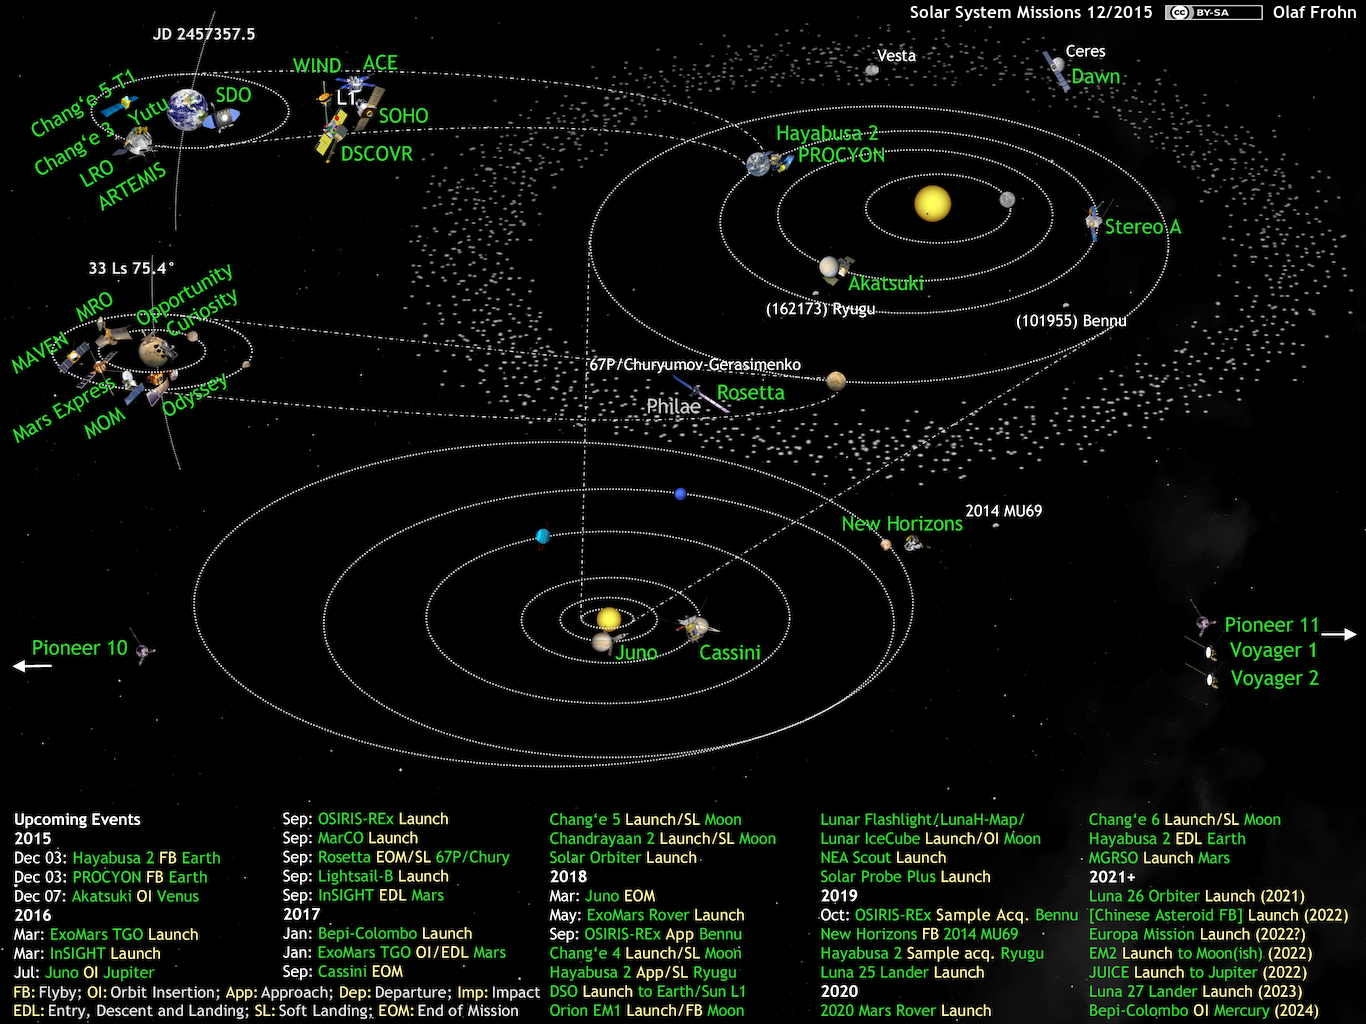 20151130_solar-system-missions2015-12.png